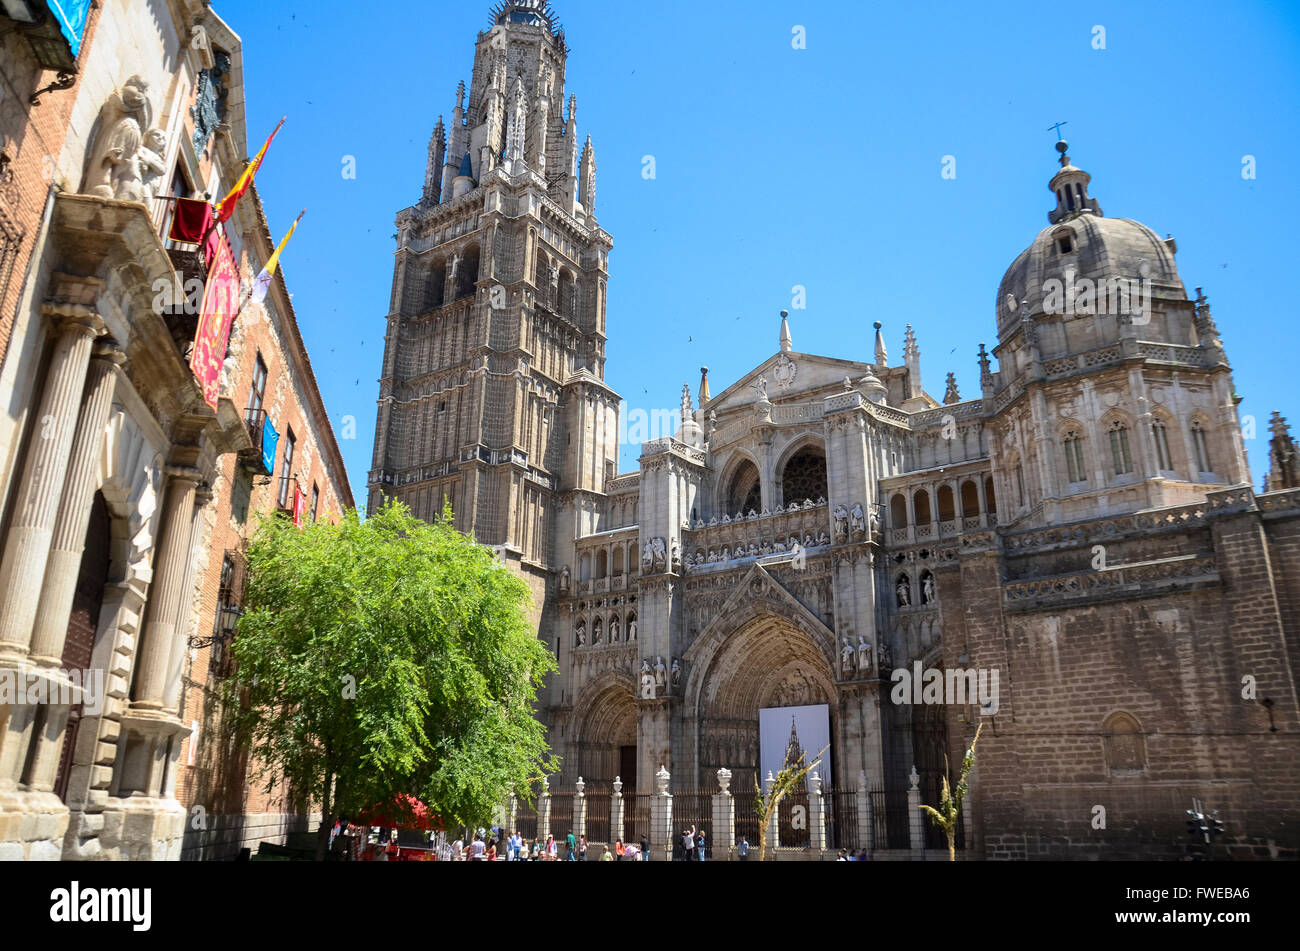 Catedral de Toledo. With its soaring tower and marvelous Gothic architecture, Toledo's cathedral is one of the - Stock Image